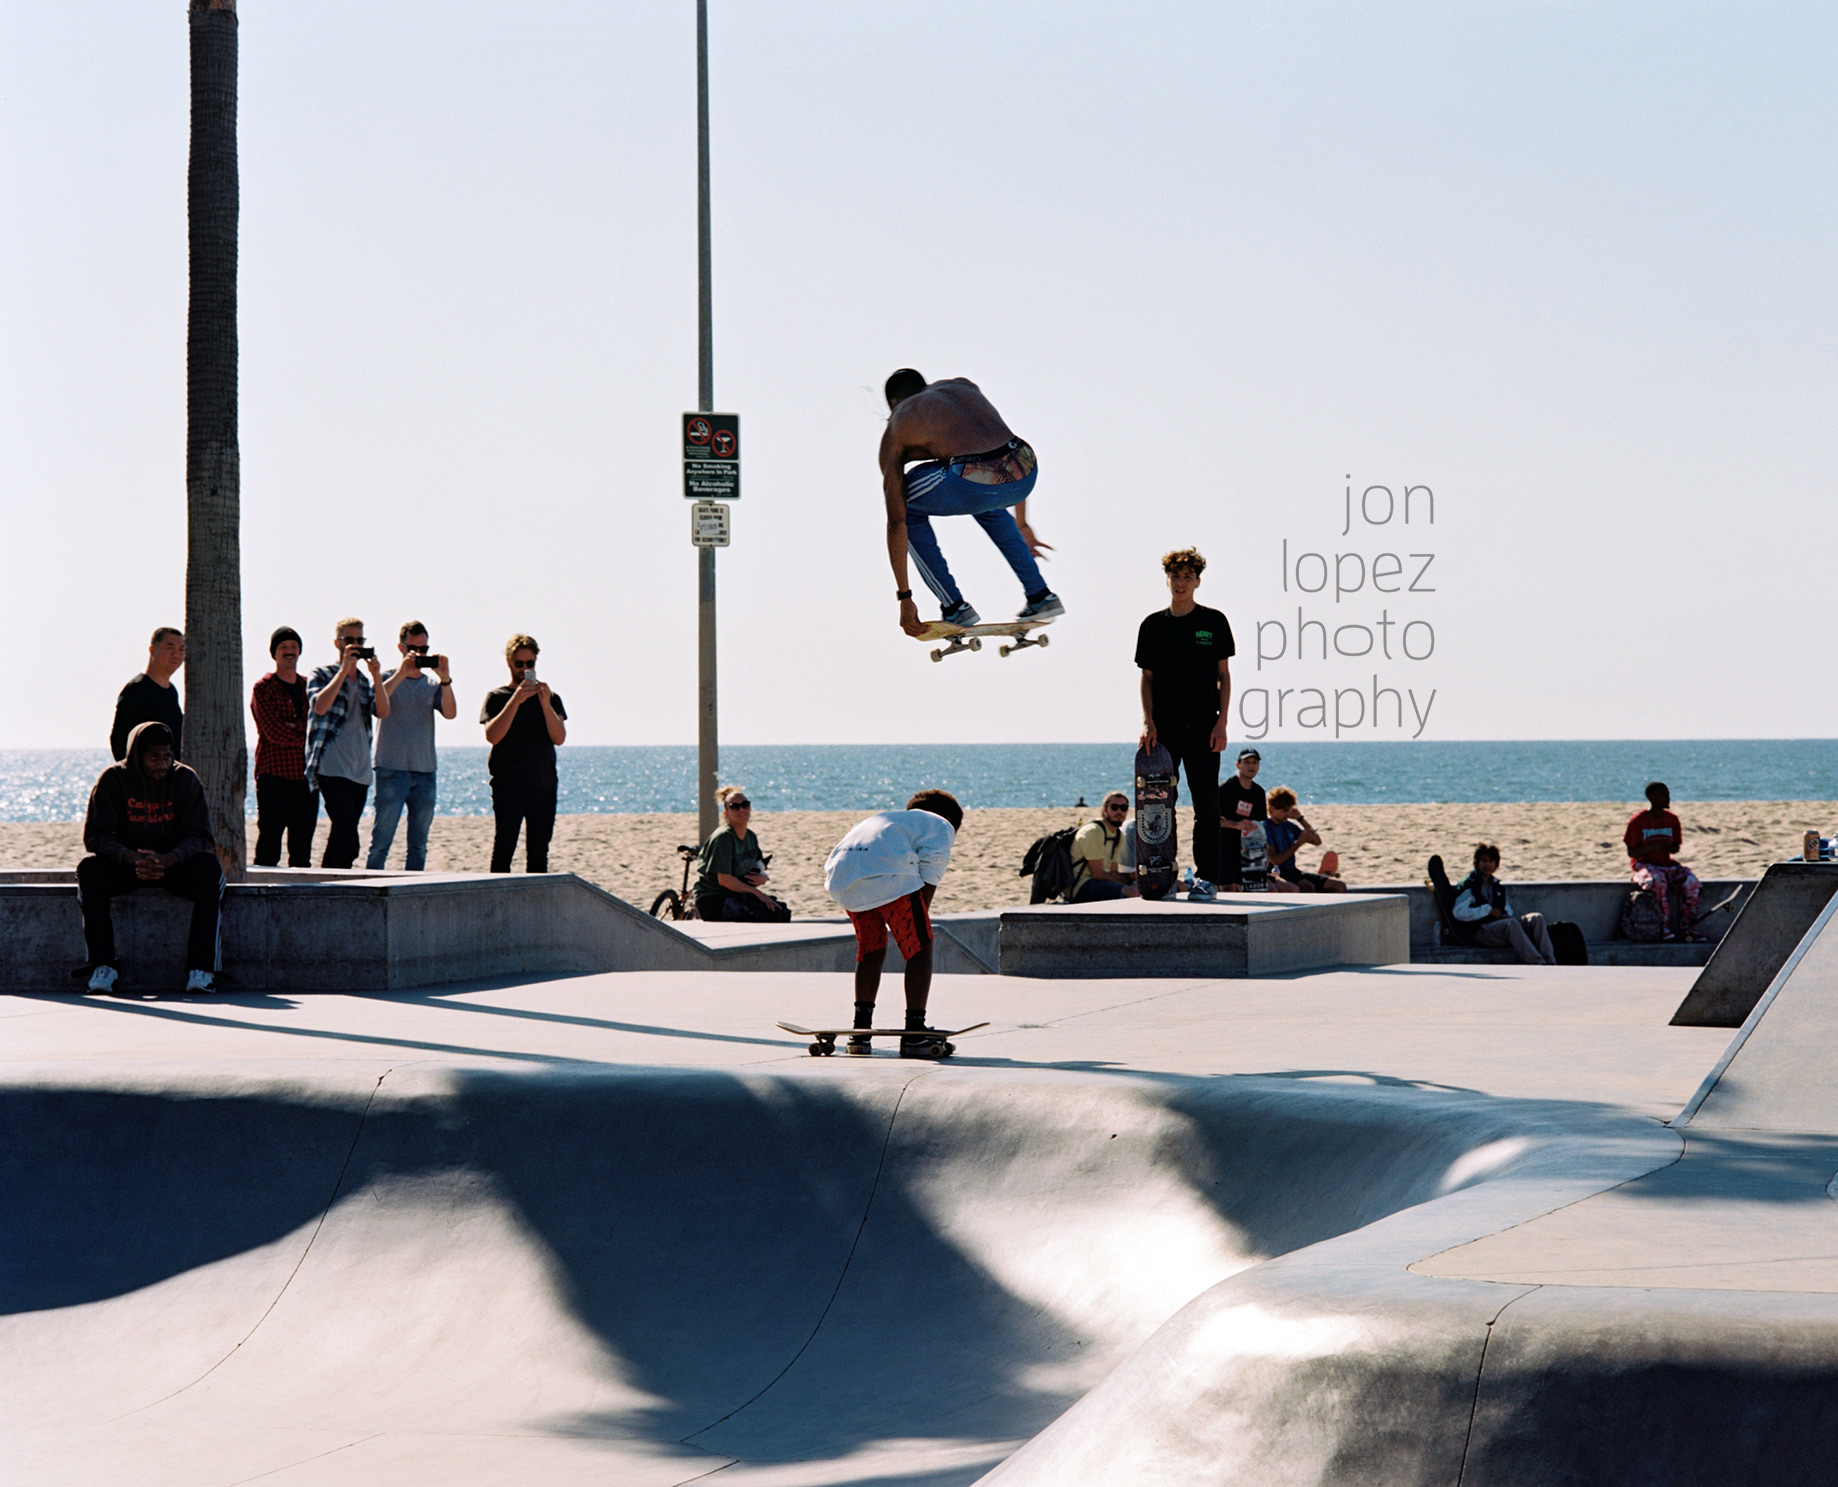 Venice Beach regular skater Isaiah Hilton takes to the sky over a young man much to the delight of the crowd. Shot on Kodak Portra 400.